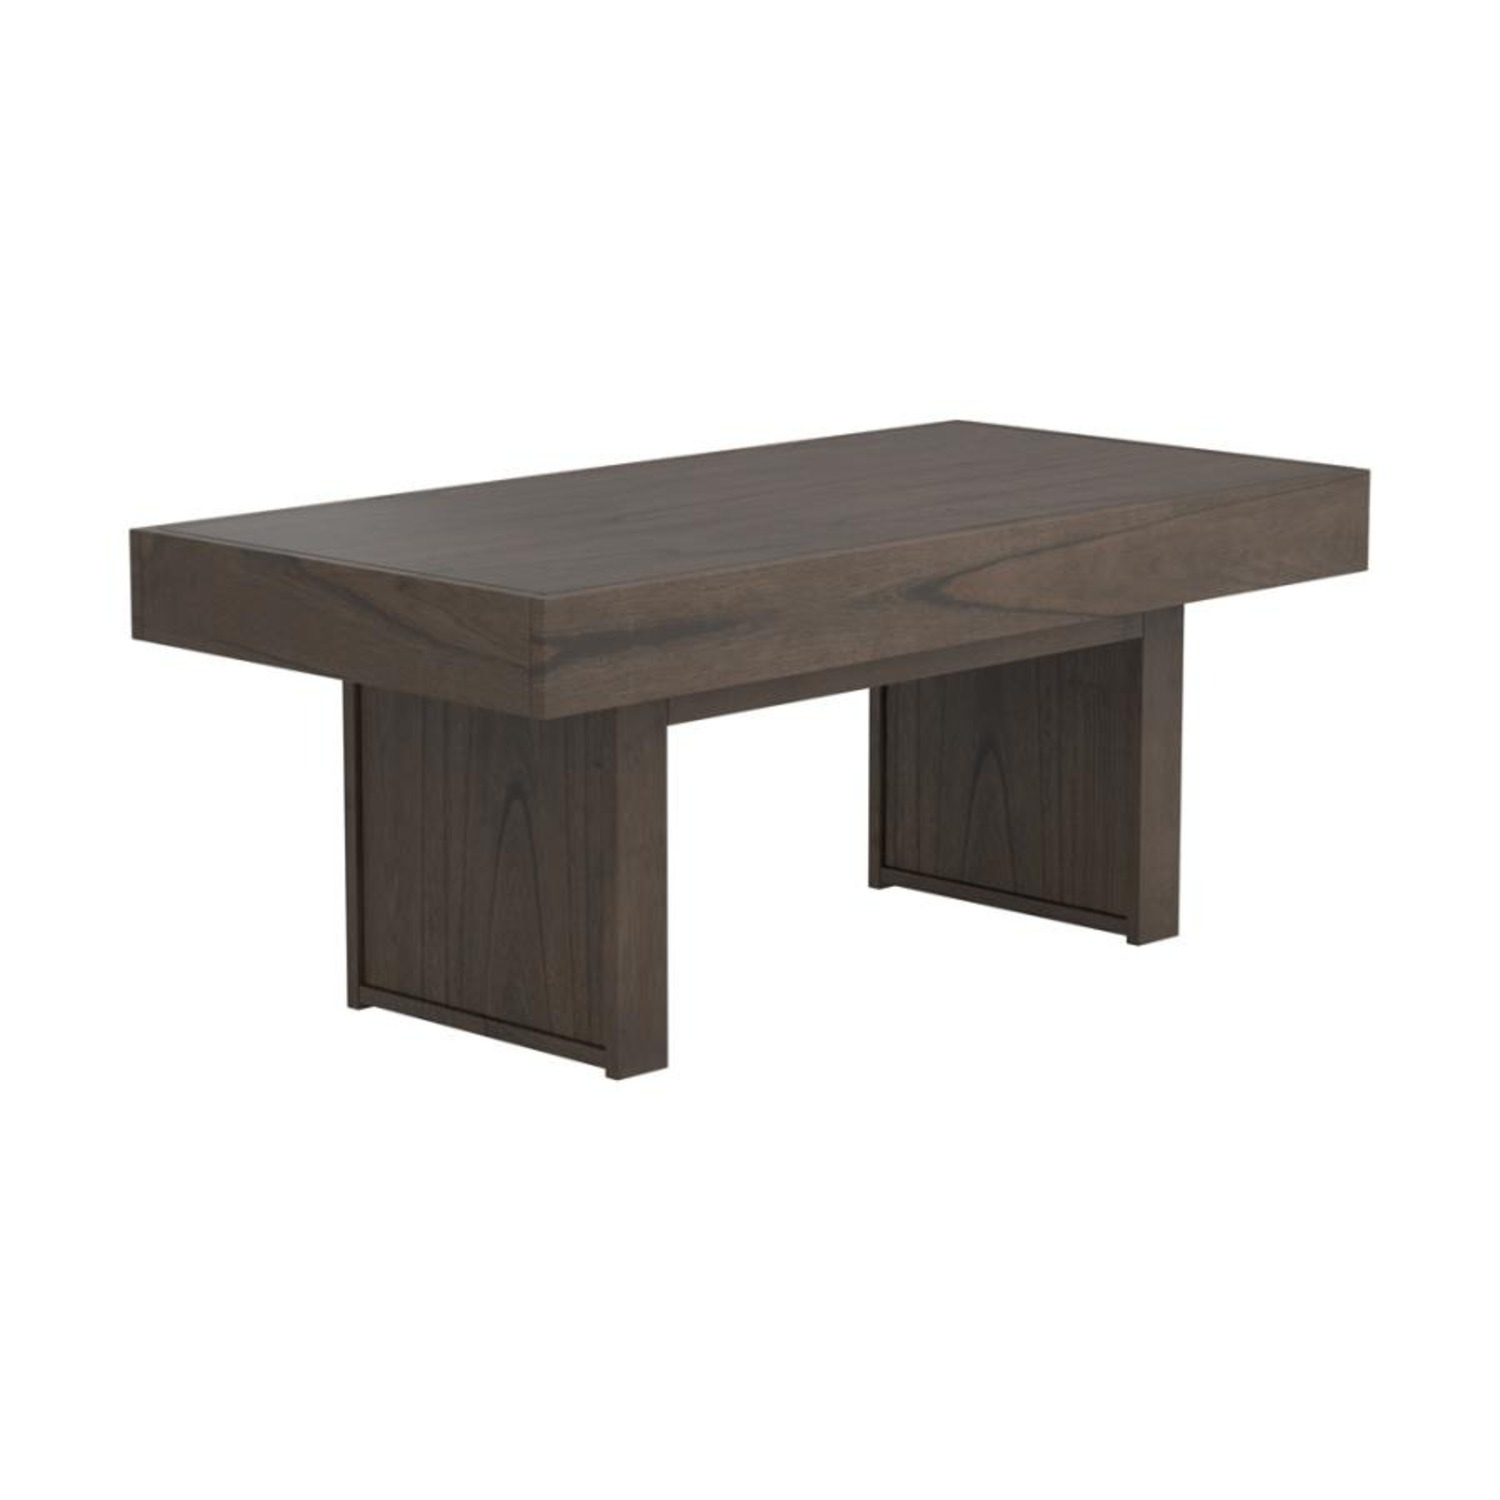 Coffee Table In Wheat Brown Finish - image-0